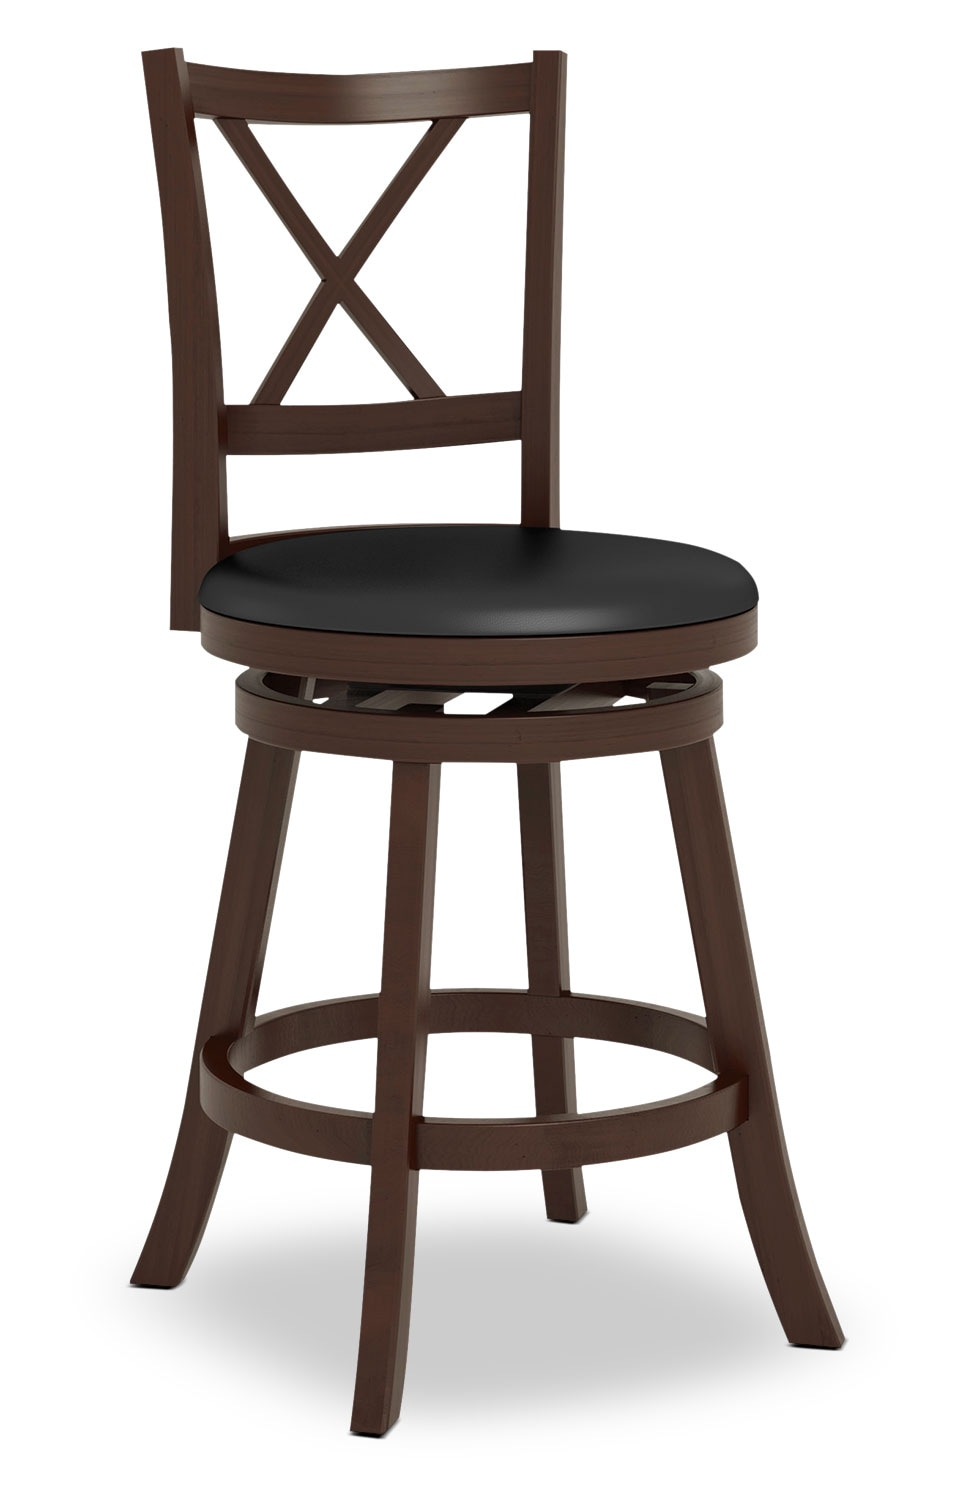 "Dining Room Furniture - Woodgrove 38"" Barstool - Cross Back"